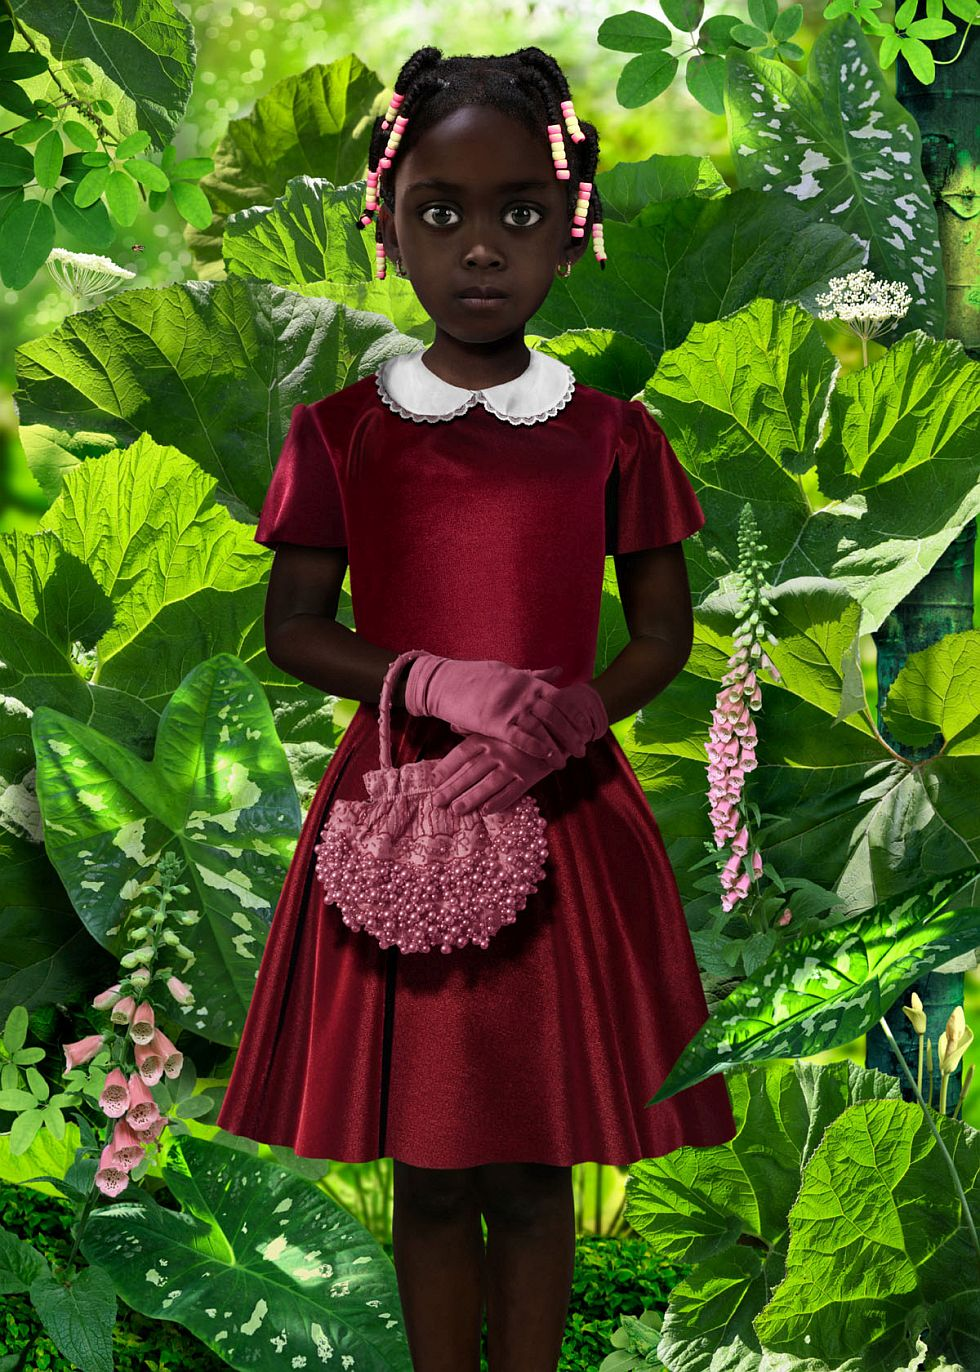 ruud-van-empel-beetleshuxley-in-london-01